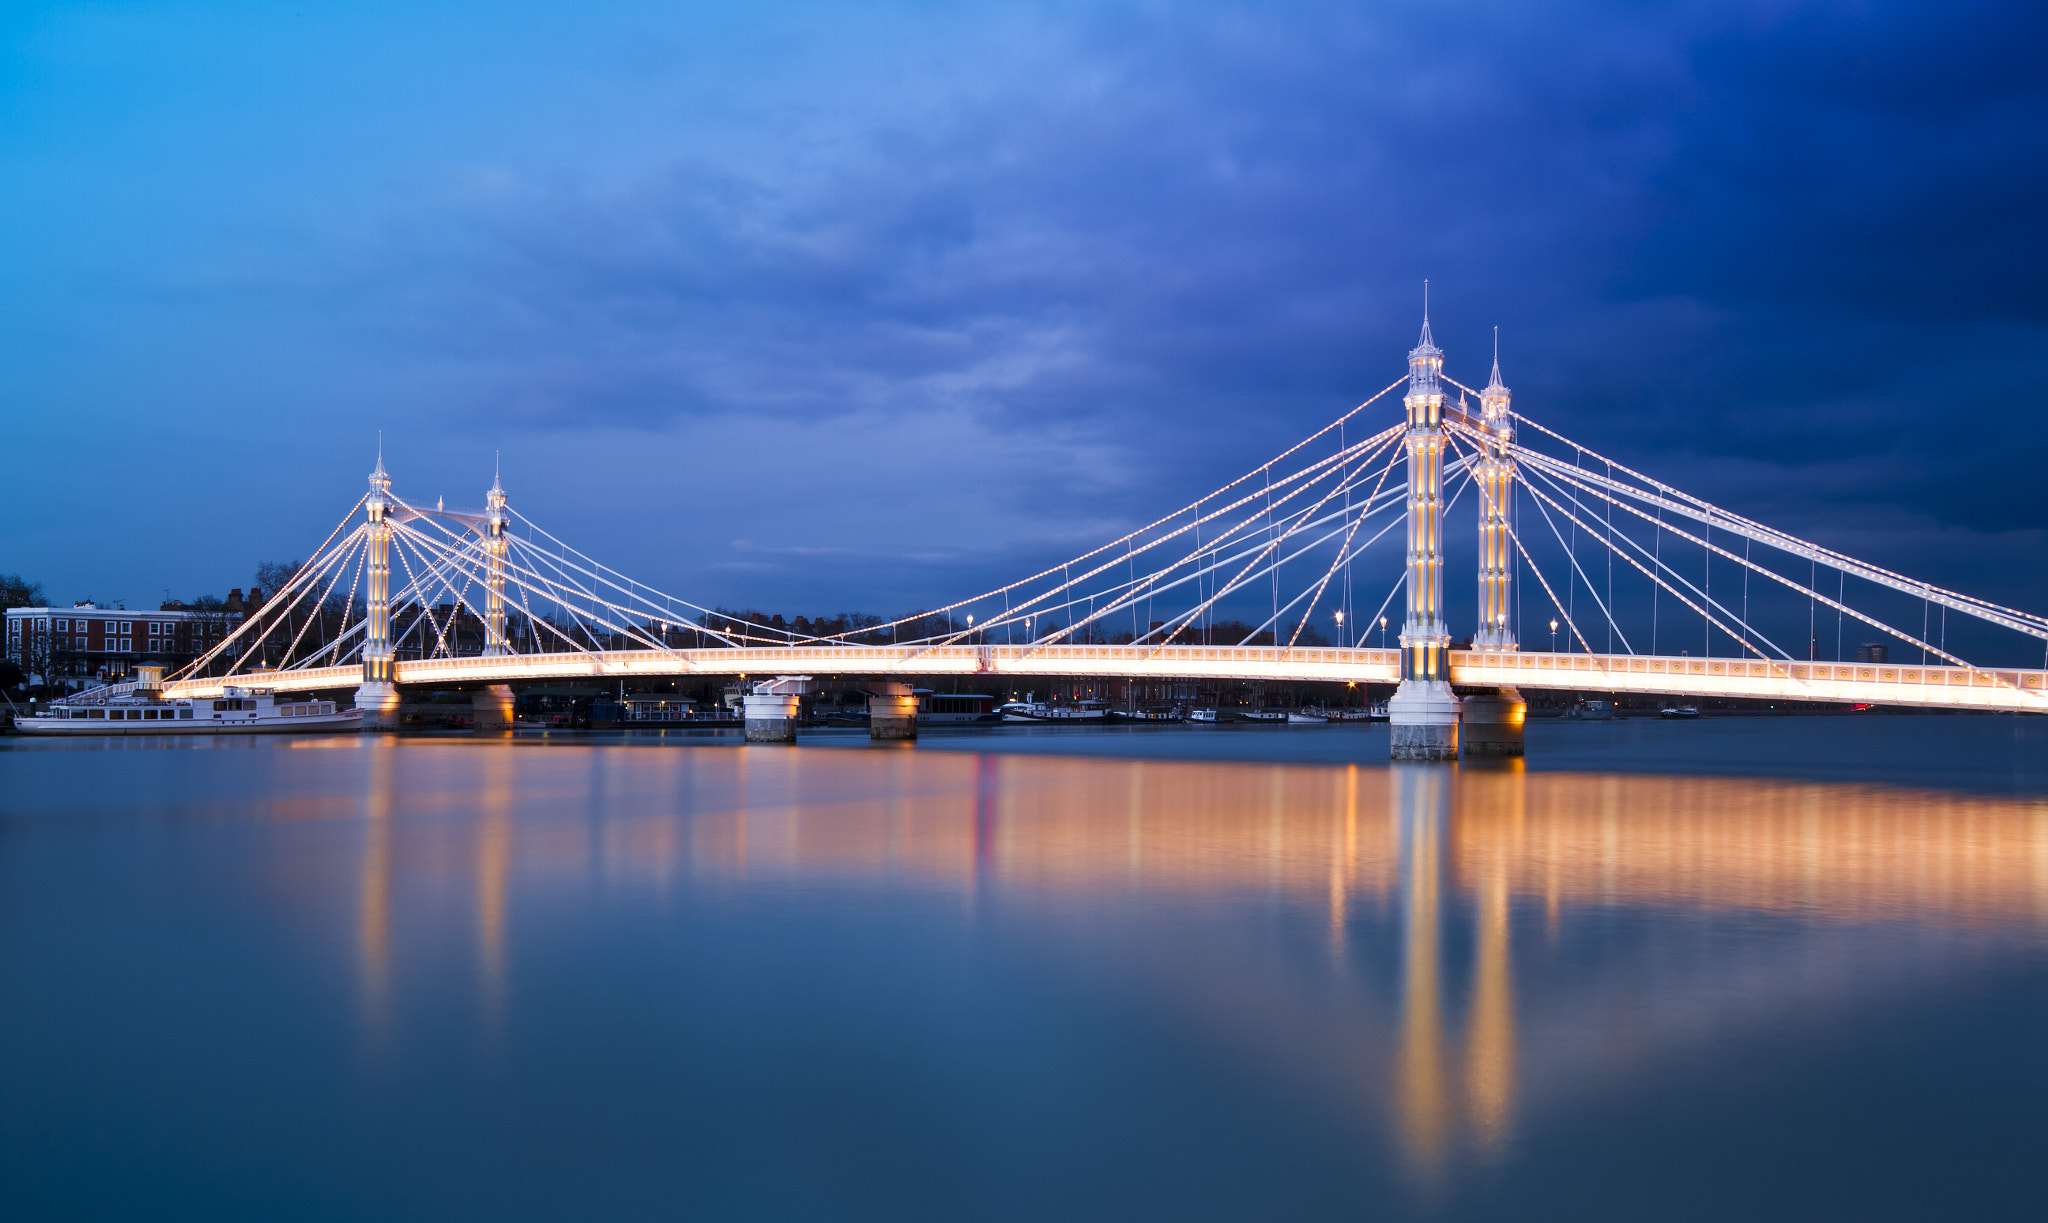 Photograph Royal Albert Bridge by Tedz Duran on 500px